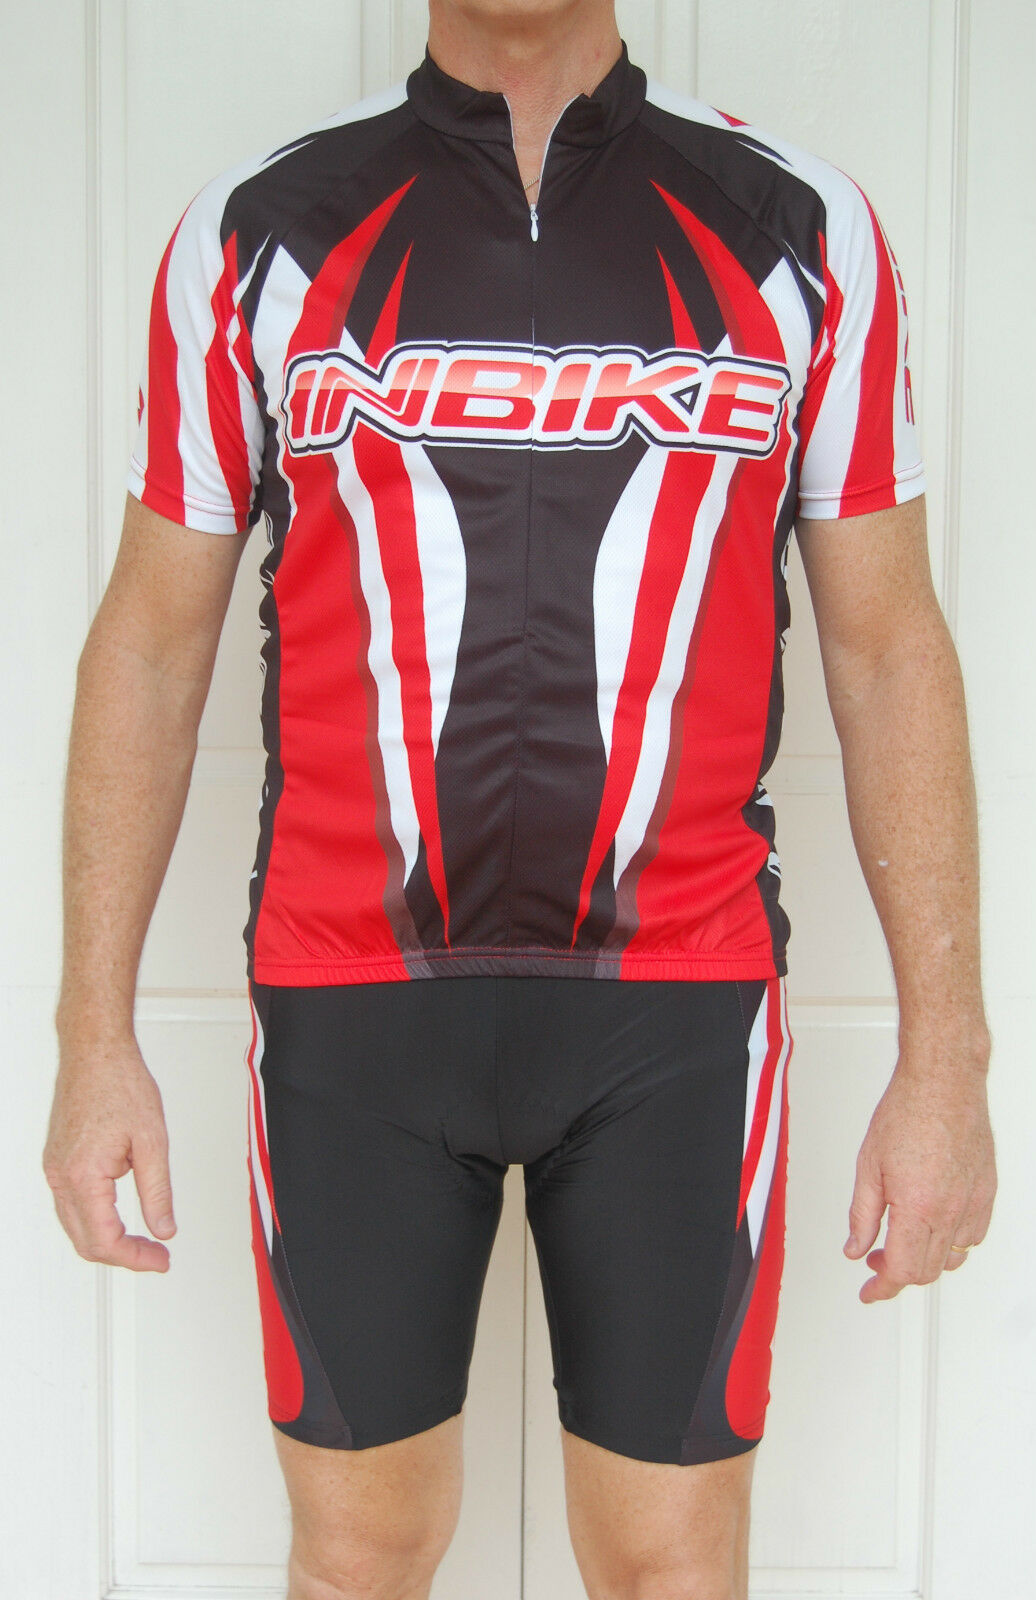 Unisex cycling jersey & knicks pants set (red, black & white)